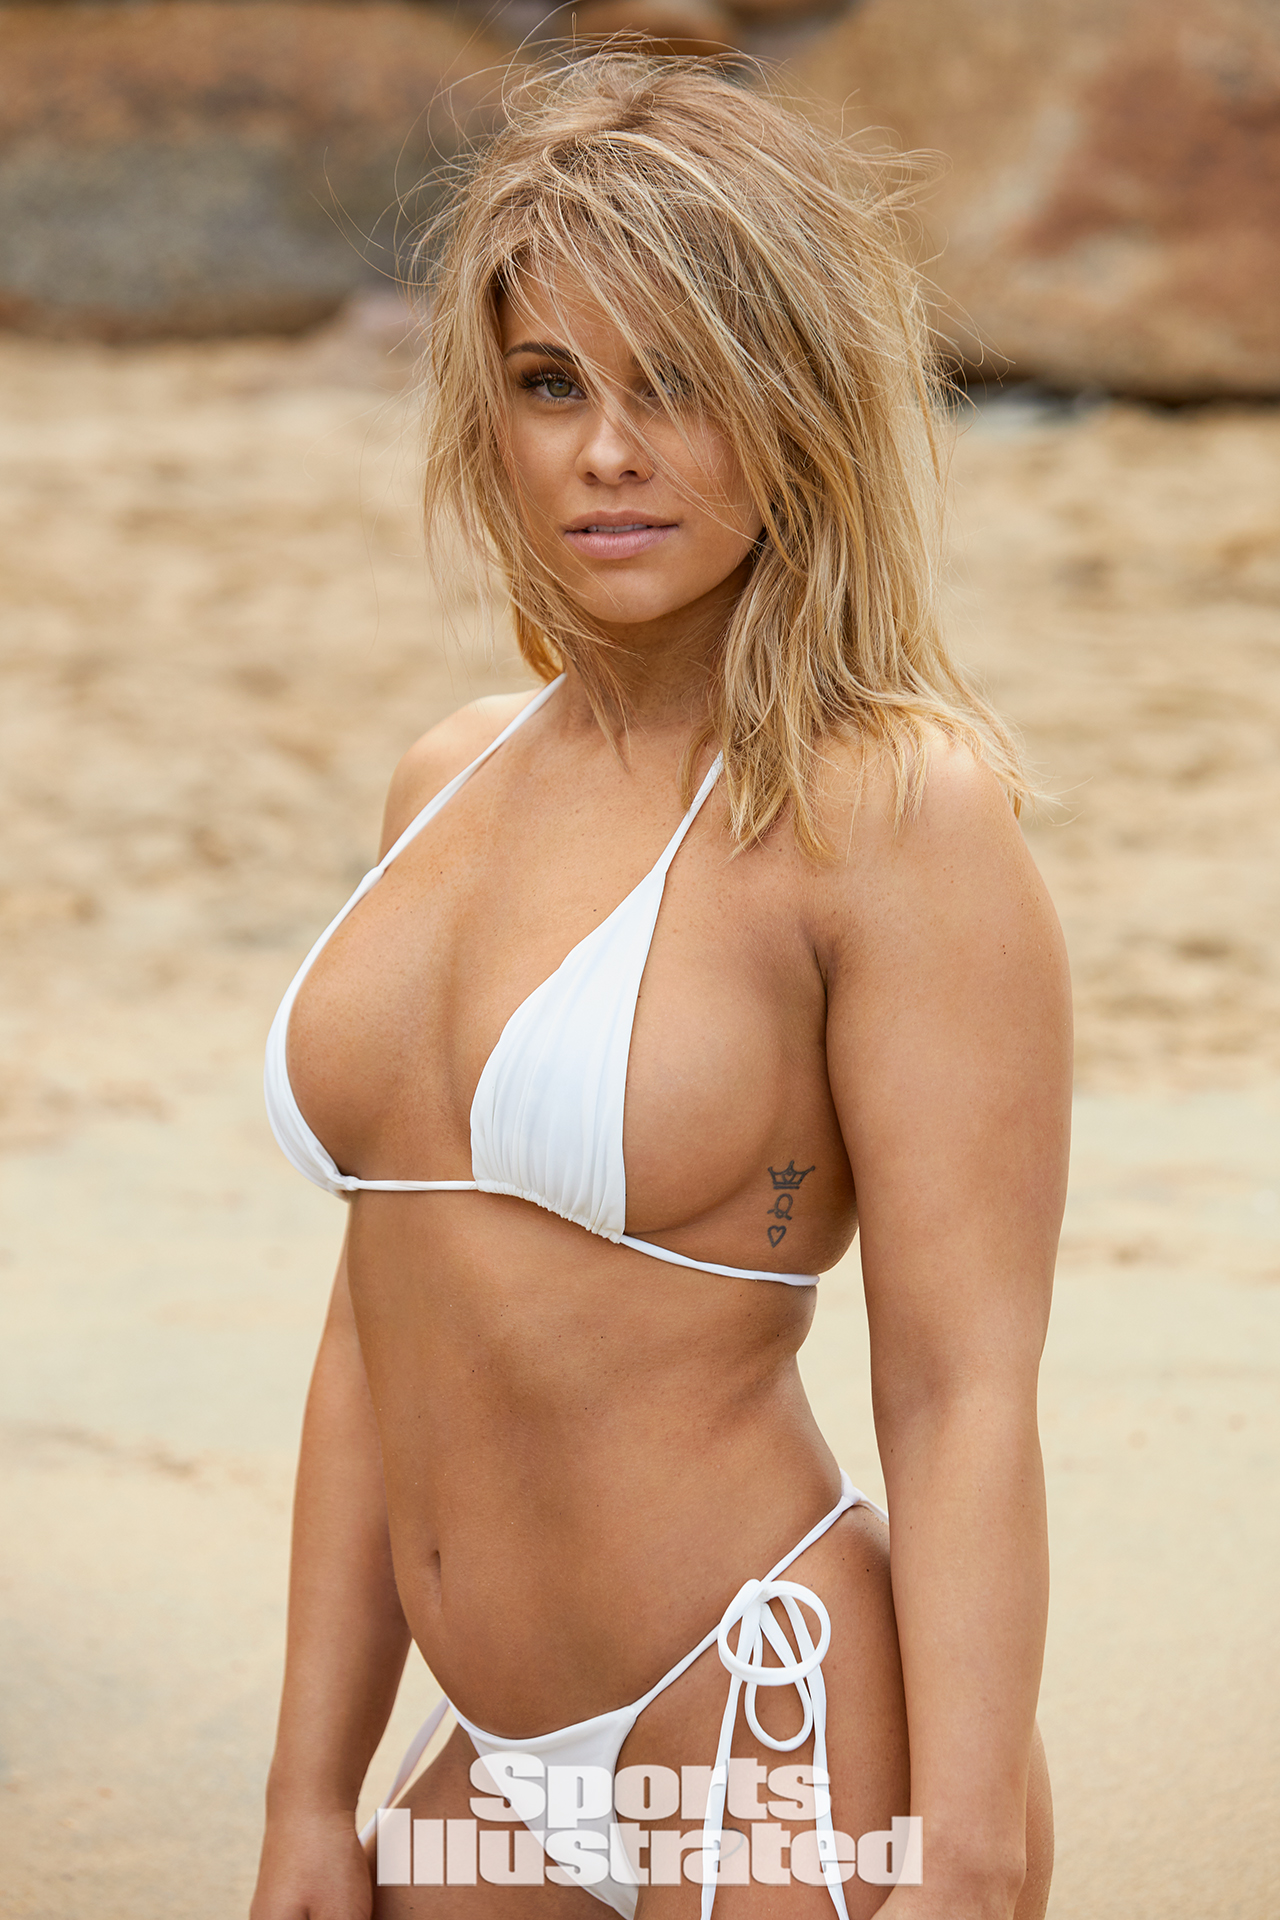 paige vanzant, sports illustrated swimsuit